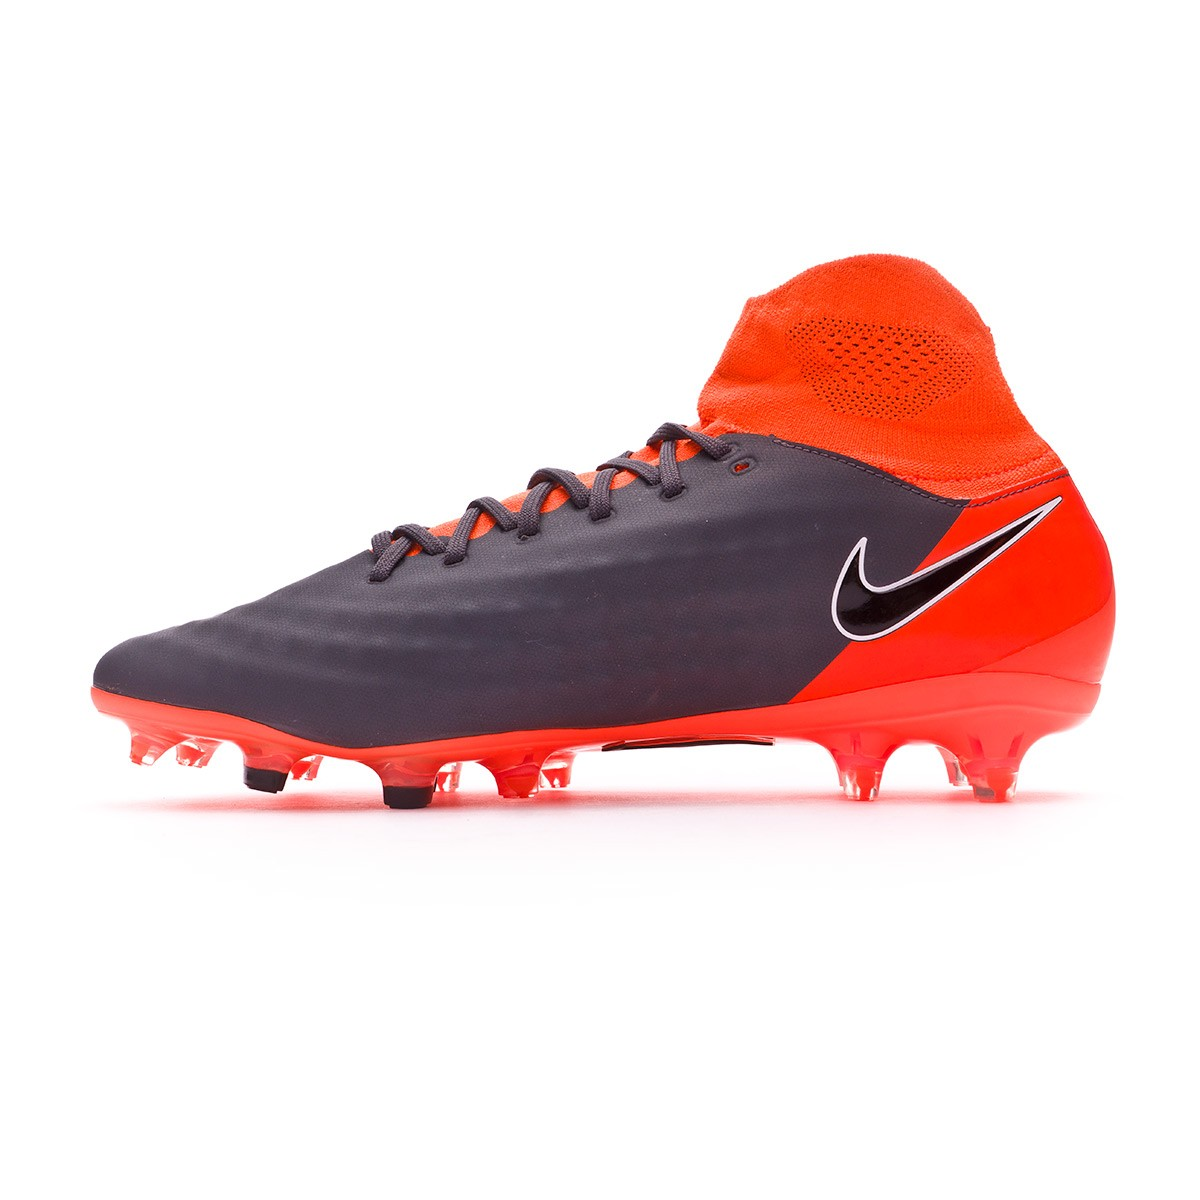 magista obra ii black